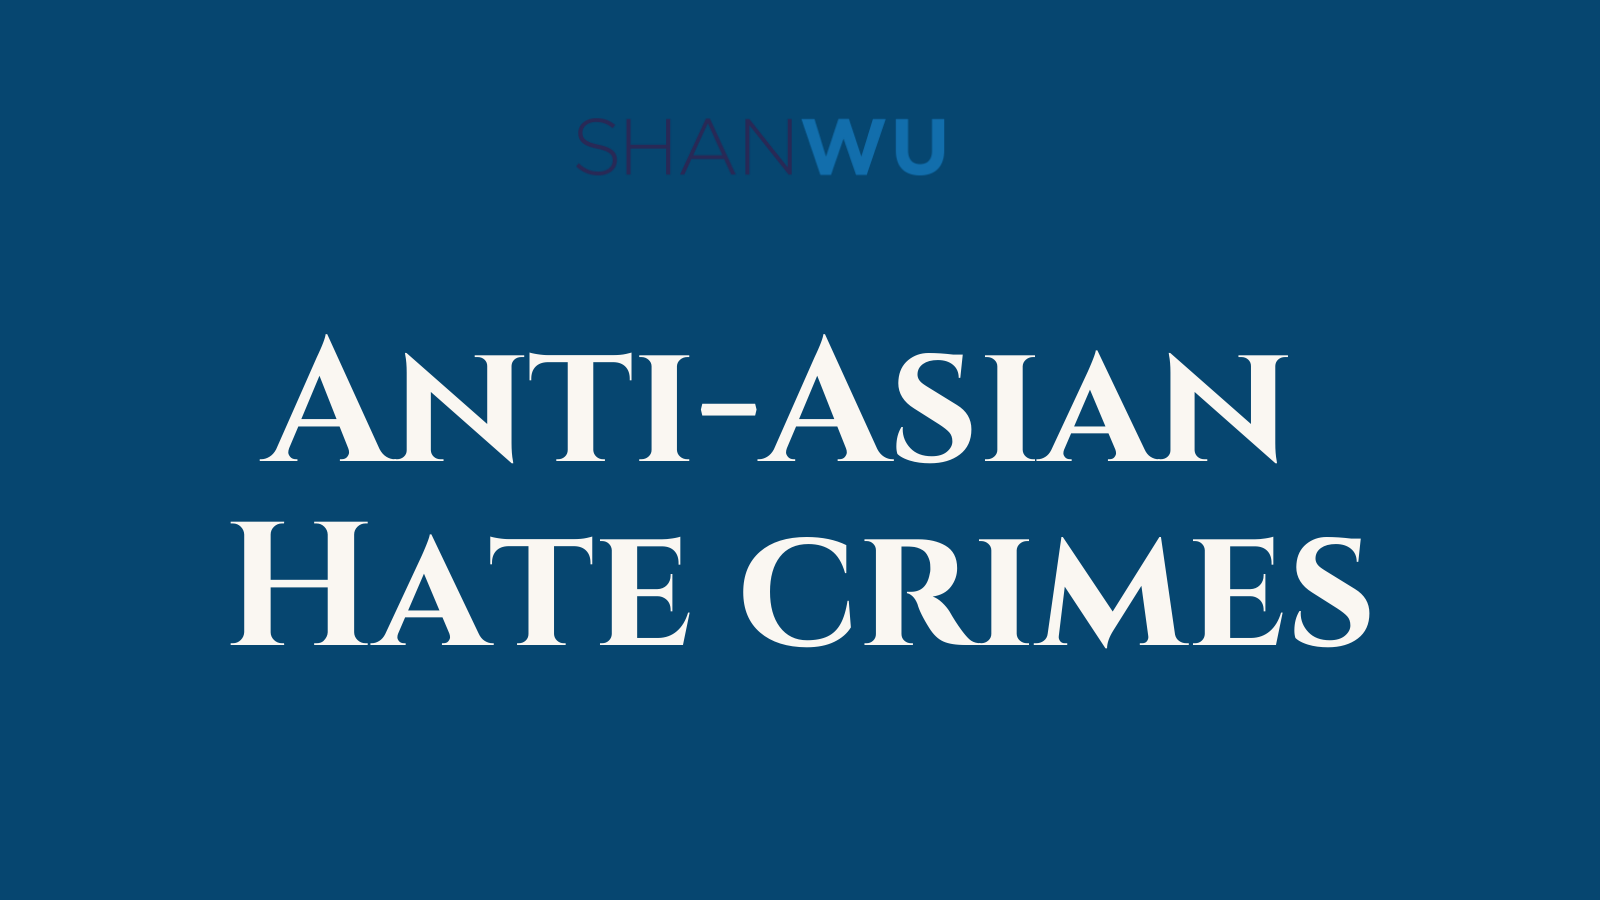 Anti-Asian Hate crimes - Shanlon Wu